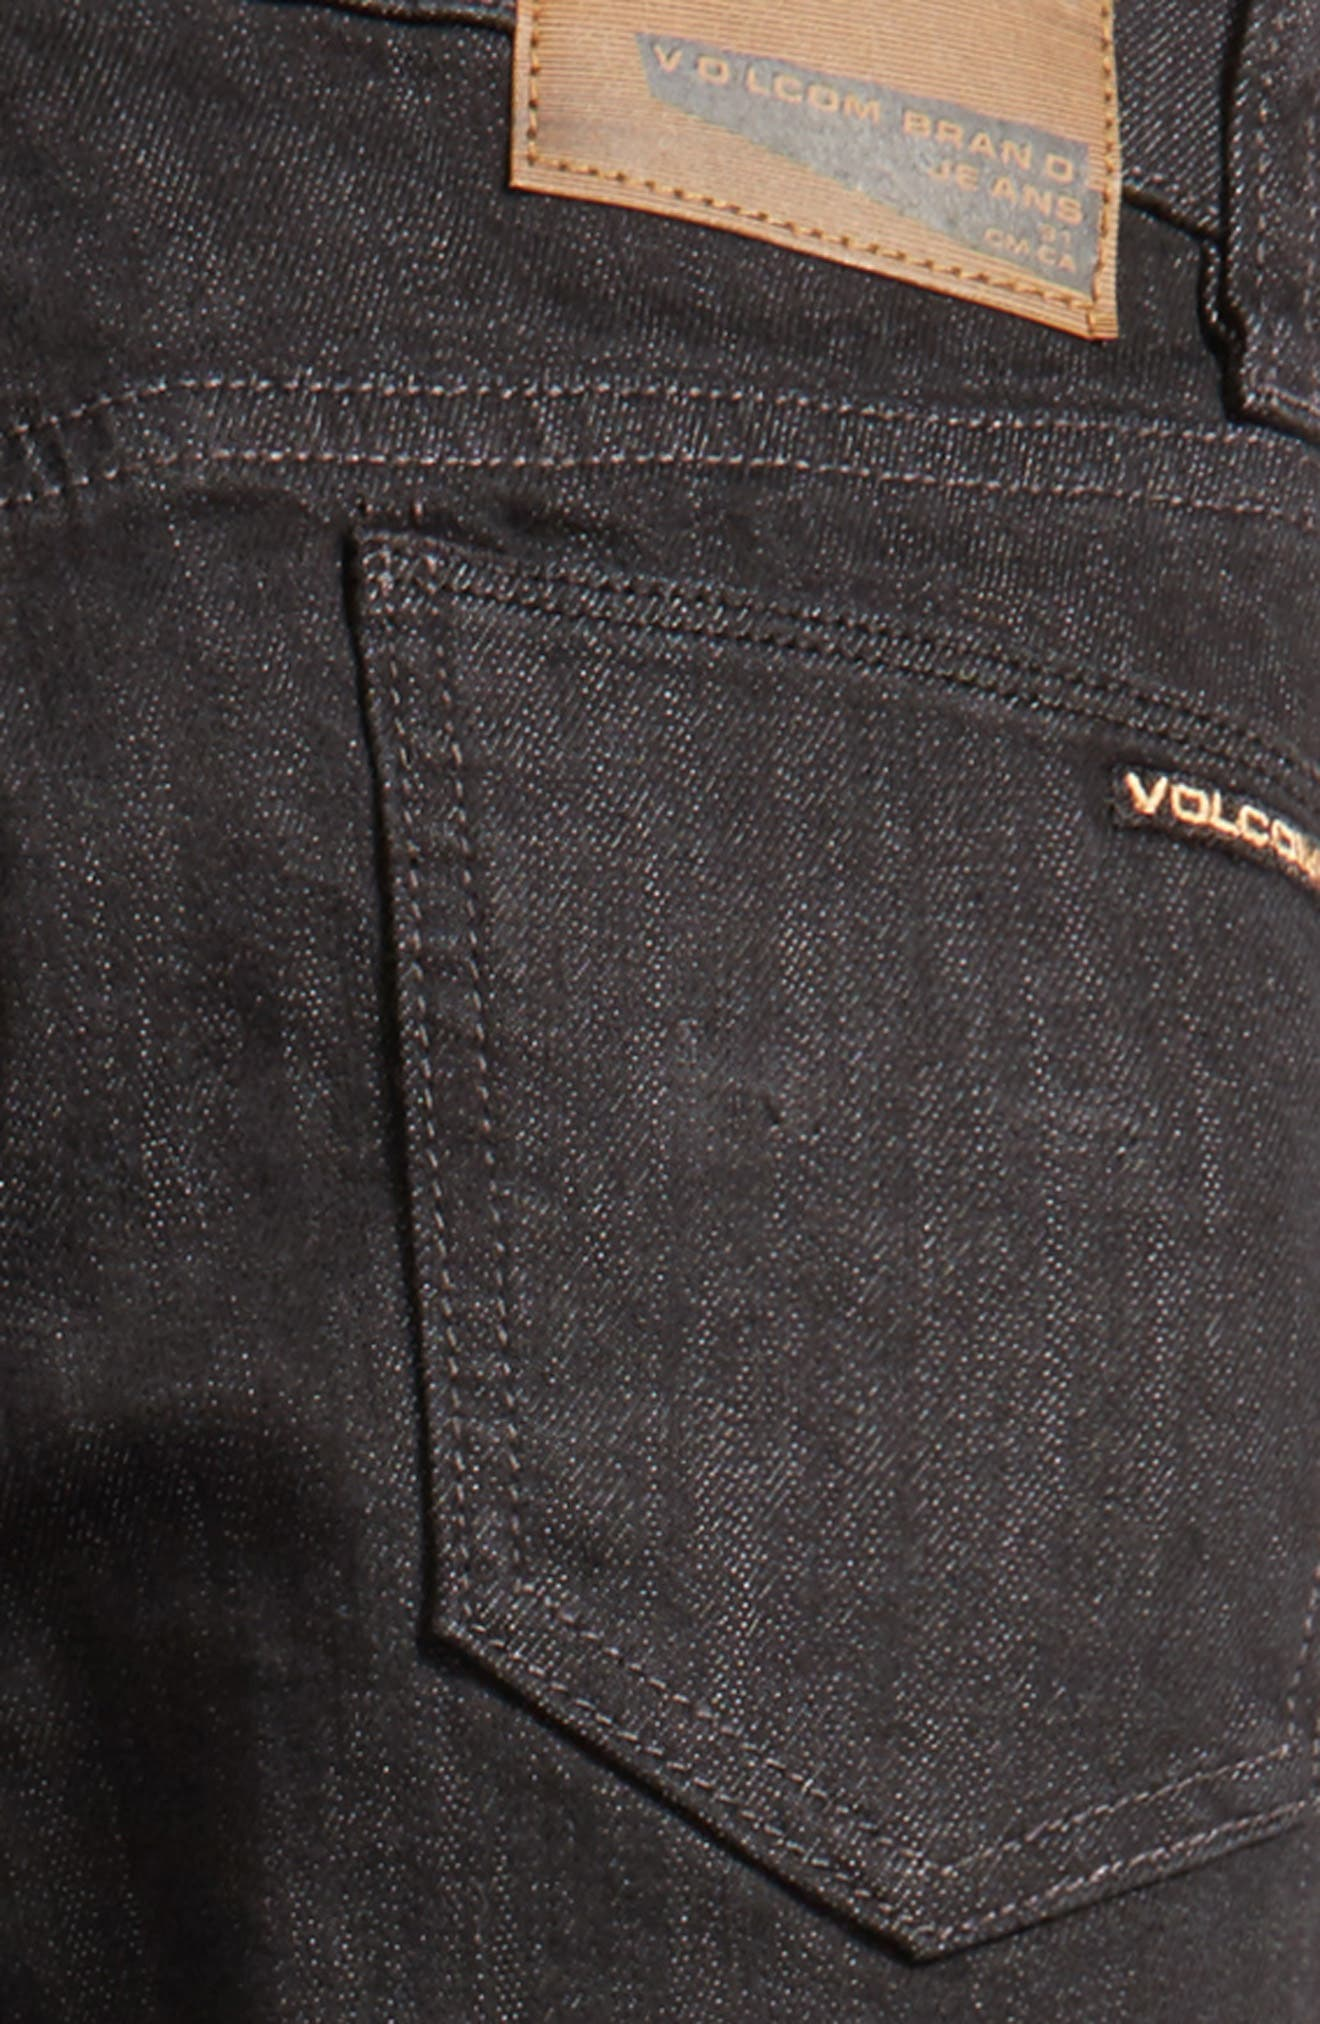 Vorta Slim Fit Jeans,                             Alternate thumbnail 4, color,                             Black Rinser